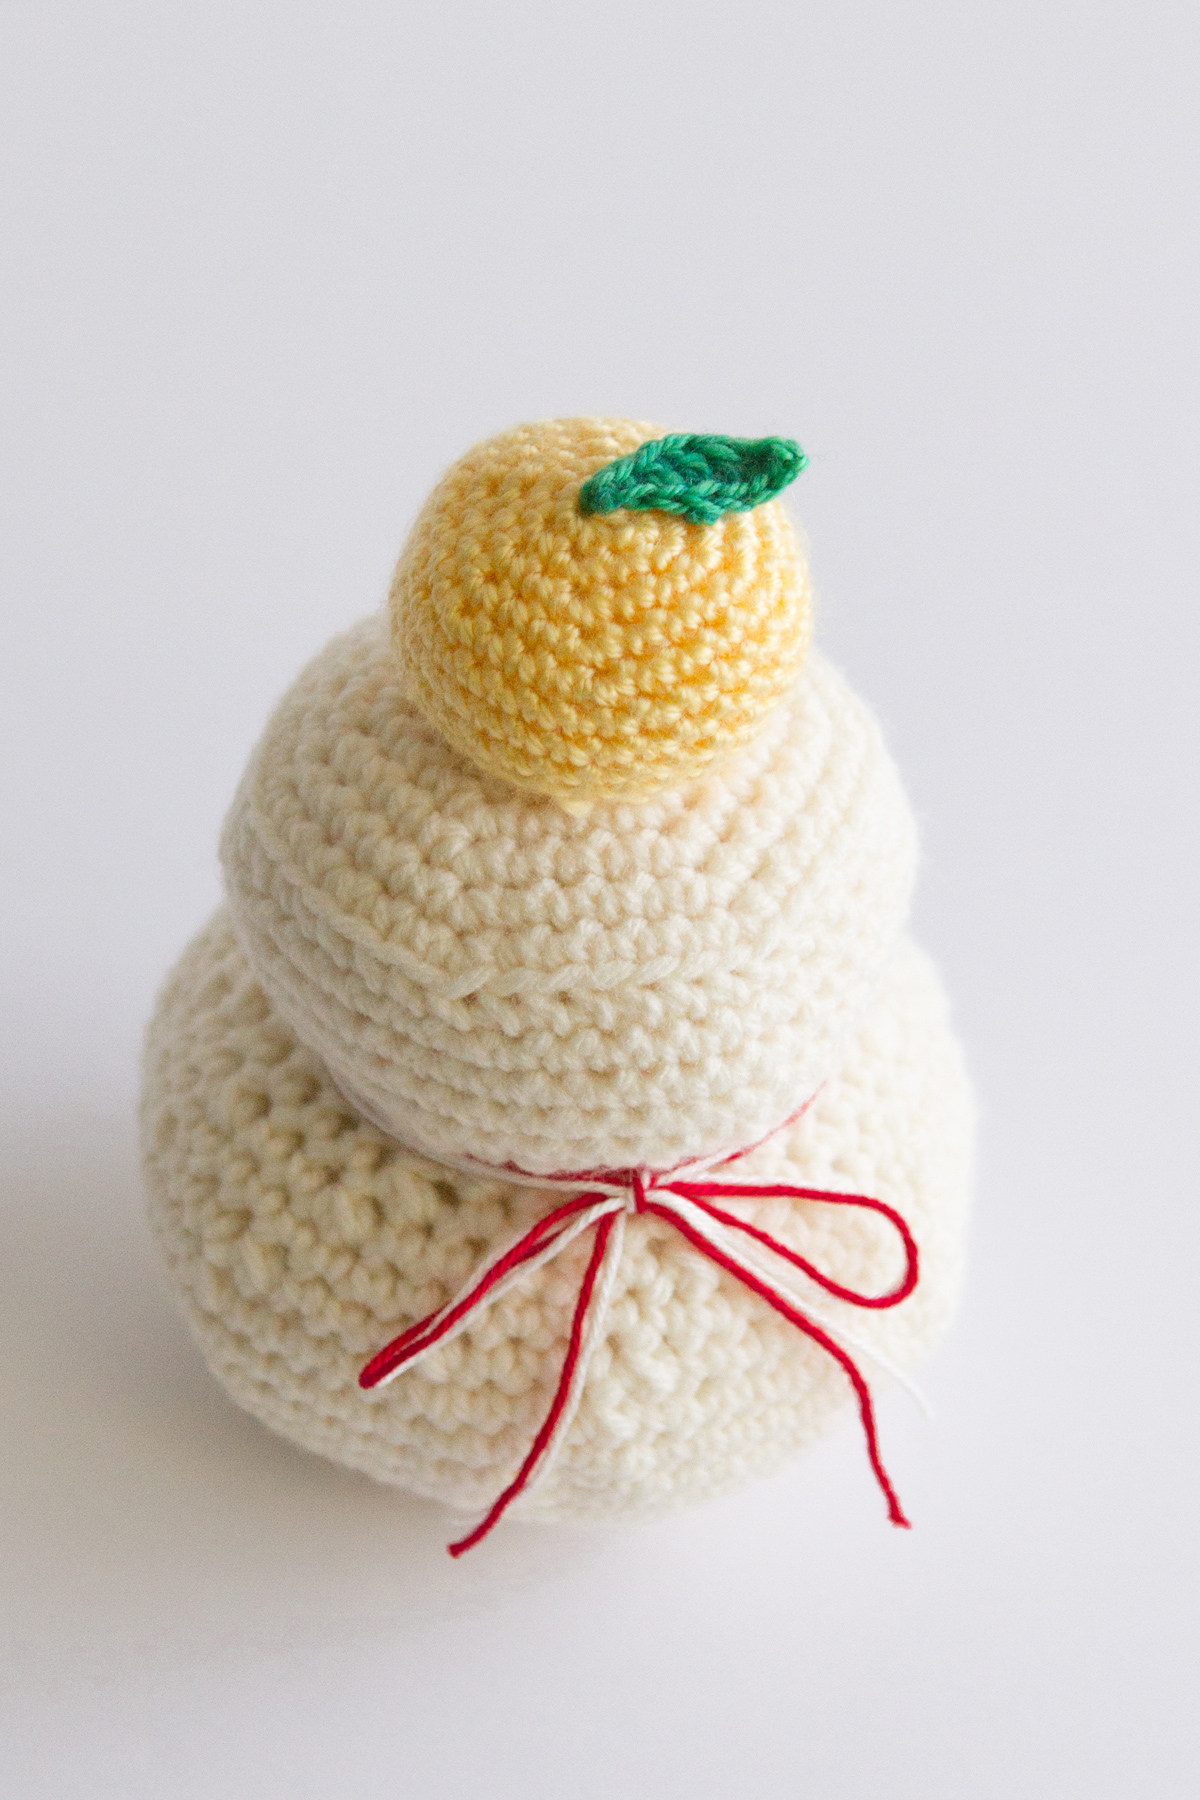 Crocheted Kagami-mochi. Mochi (sticky rice cakes) with a tiny Japanese orange (similar to Mandarin oranges) on top.